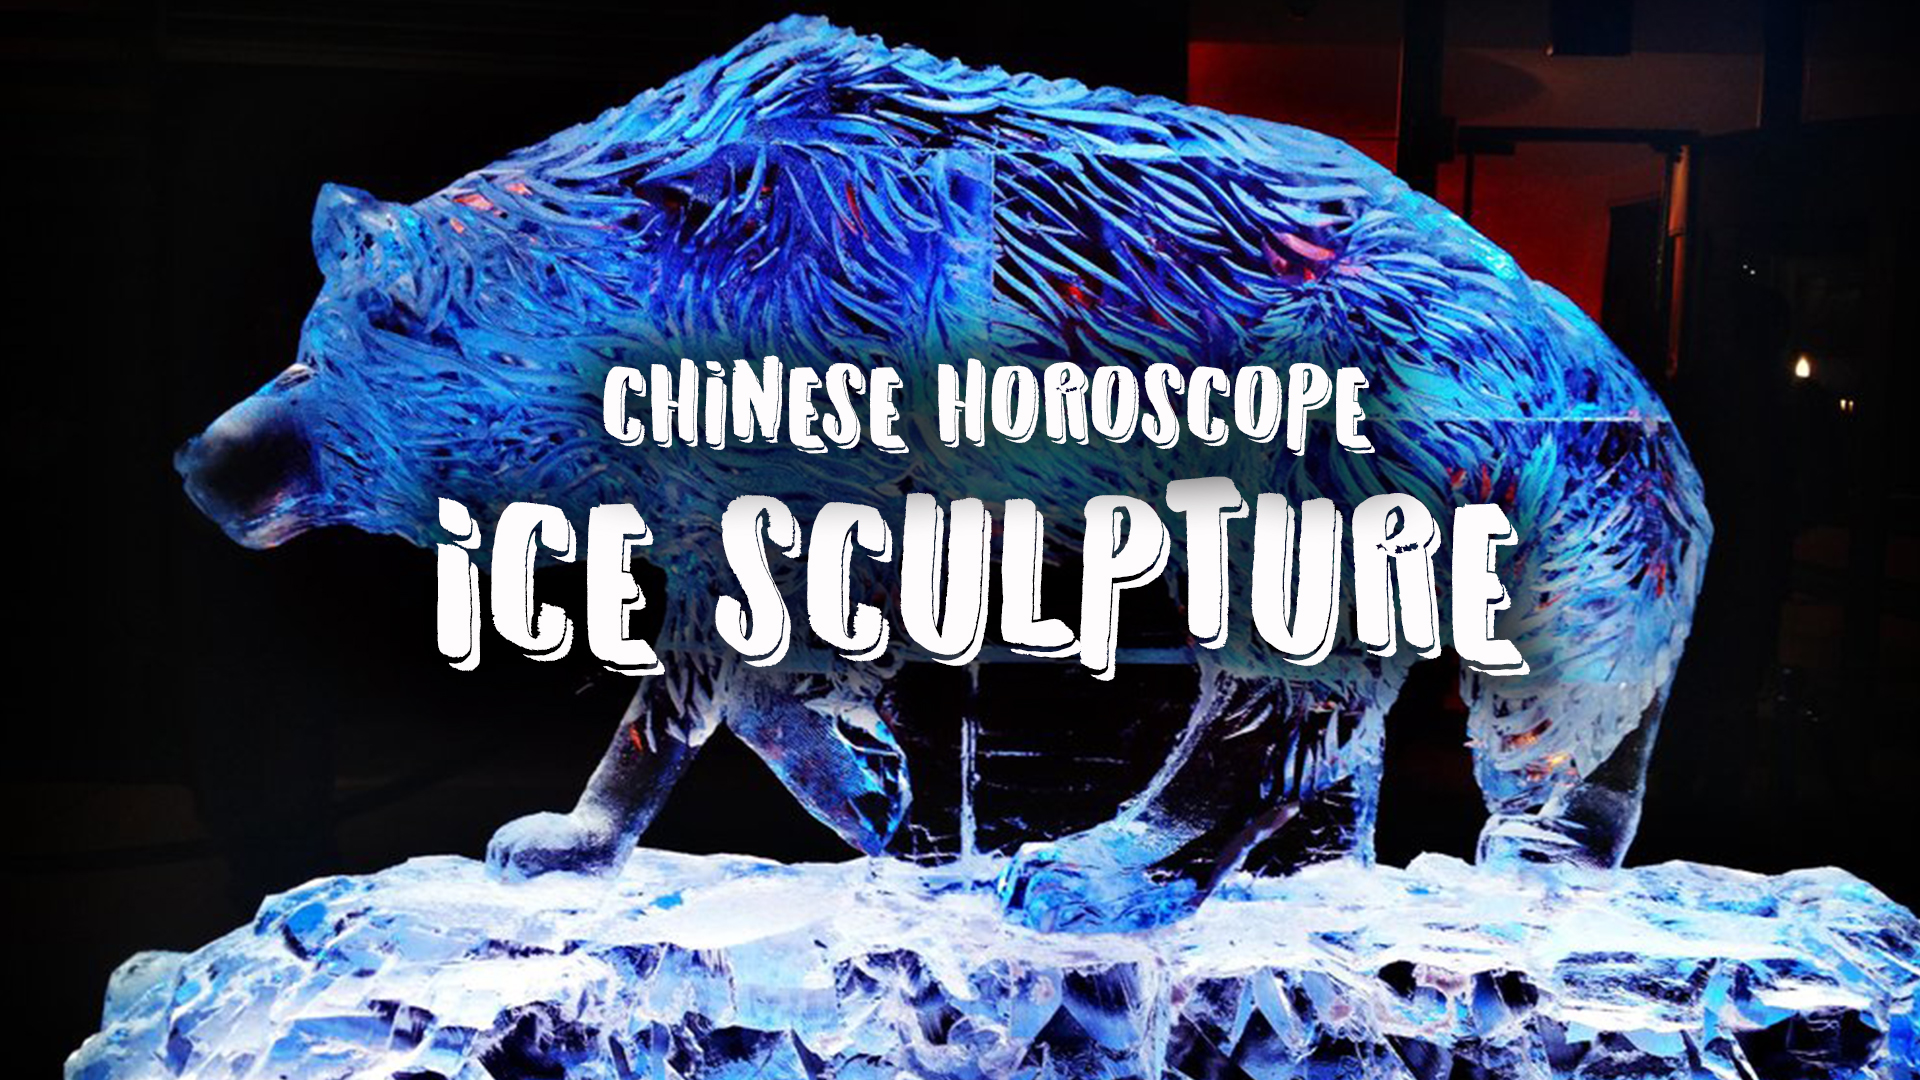 View the extravagant exhibit of a giant pig ice sculpture in commemorating the Year of Pig in the Lunar calendar, carved to perfection.